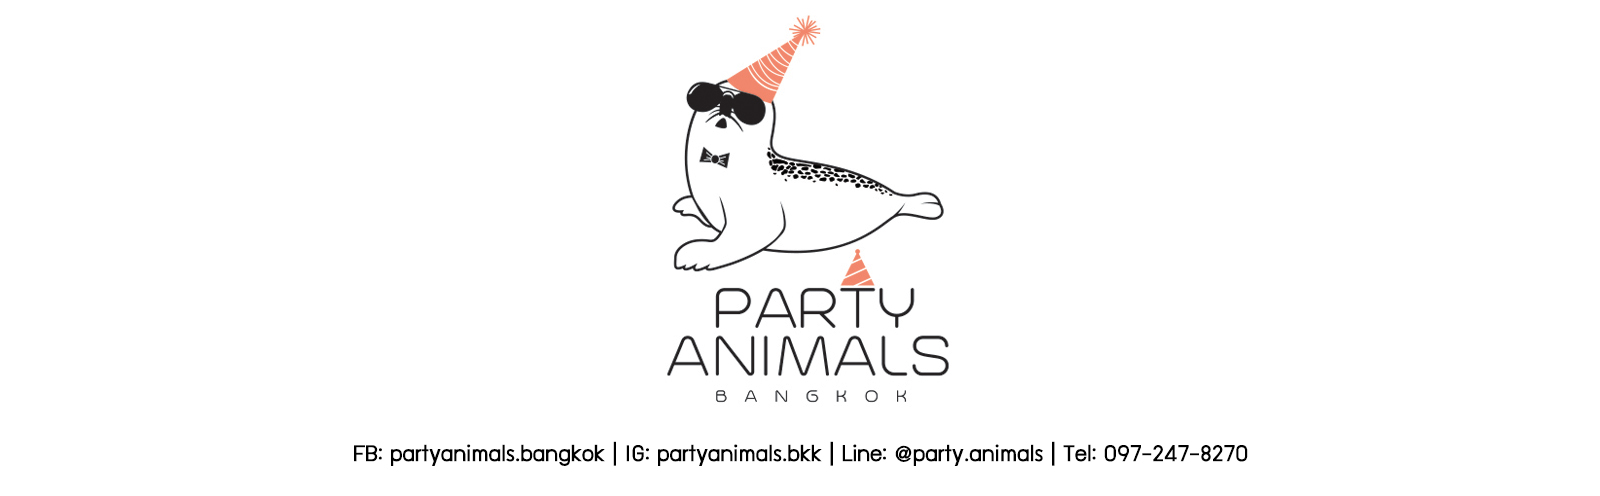 Party Animals Bangkok: We exist to create extraordinary party